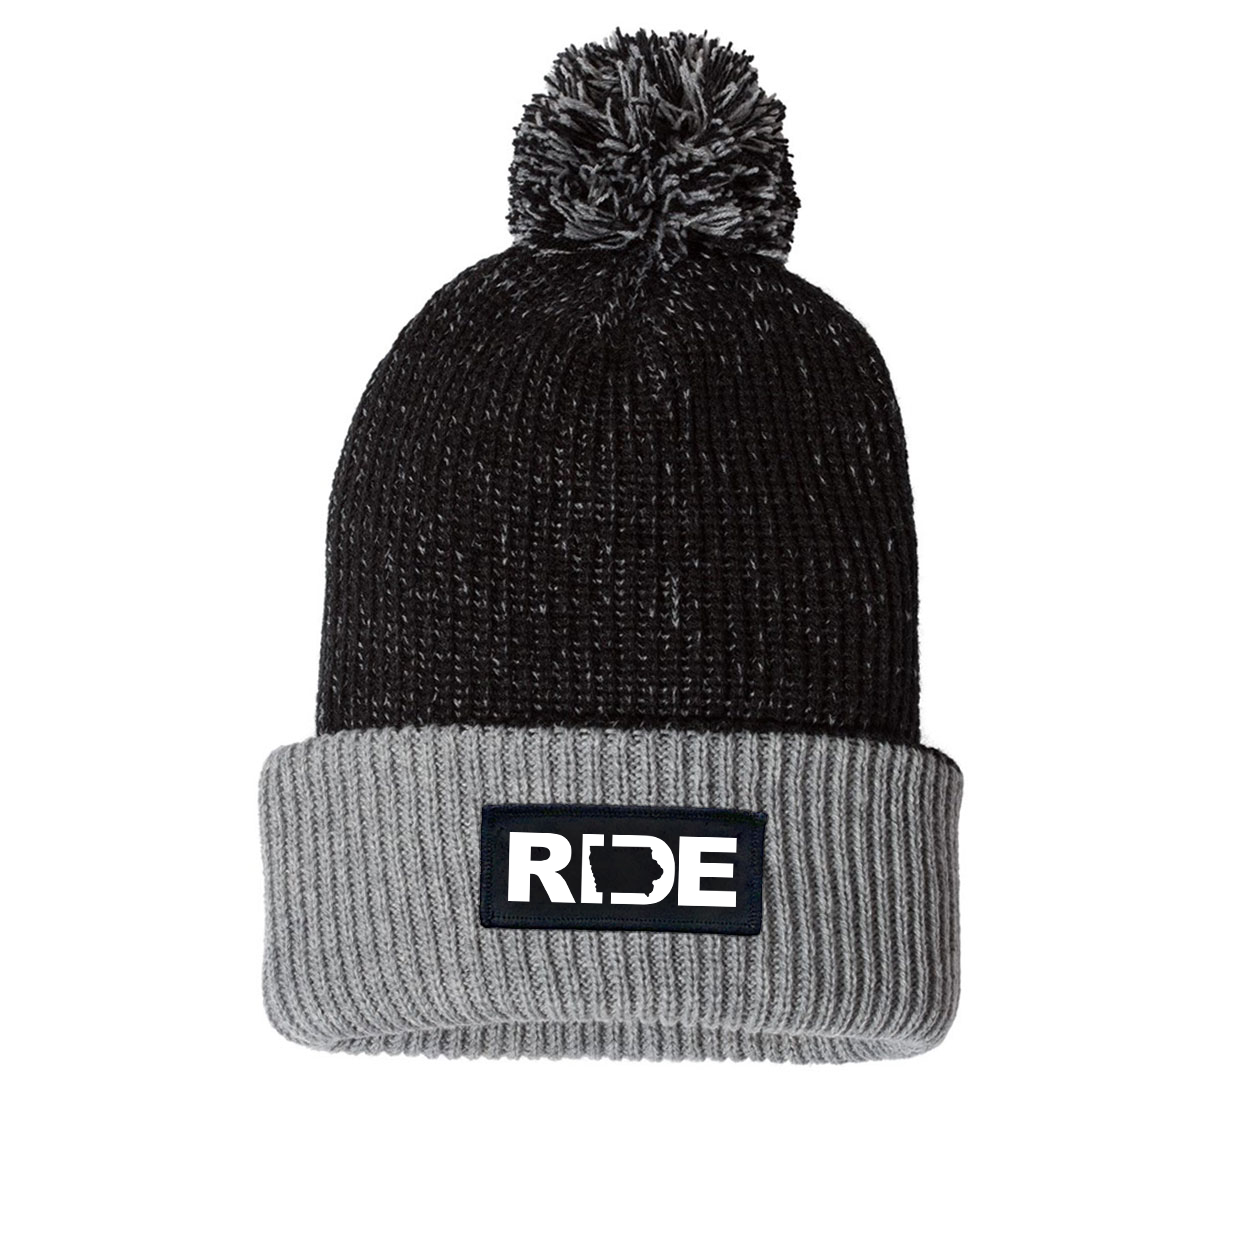 Ride Iowa Night Out Woven Patch Roll Up Pom Knit Beanie Black/Gray (White Logo)